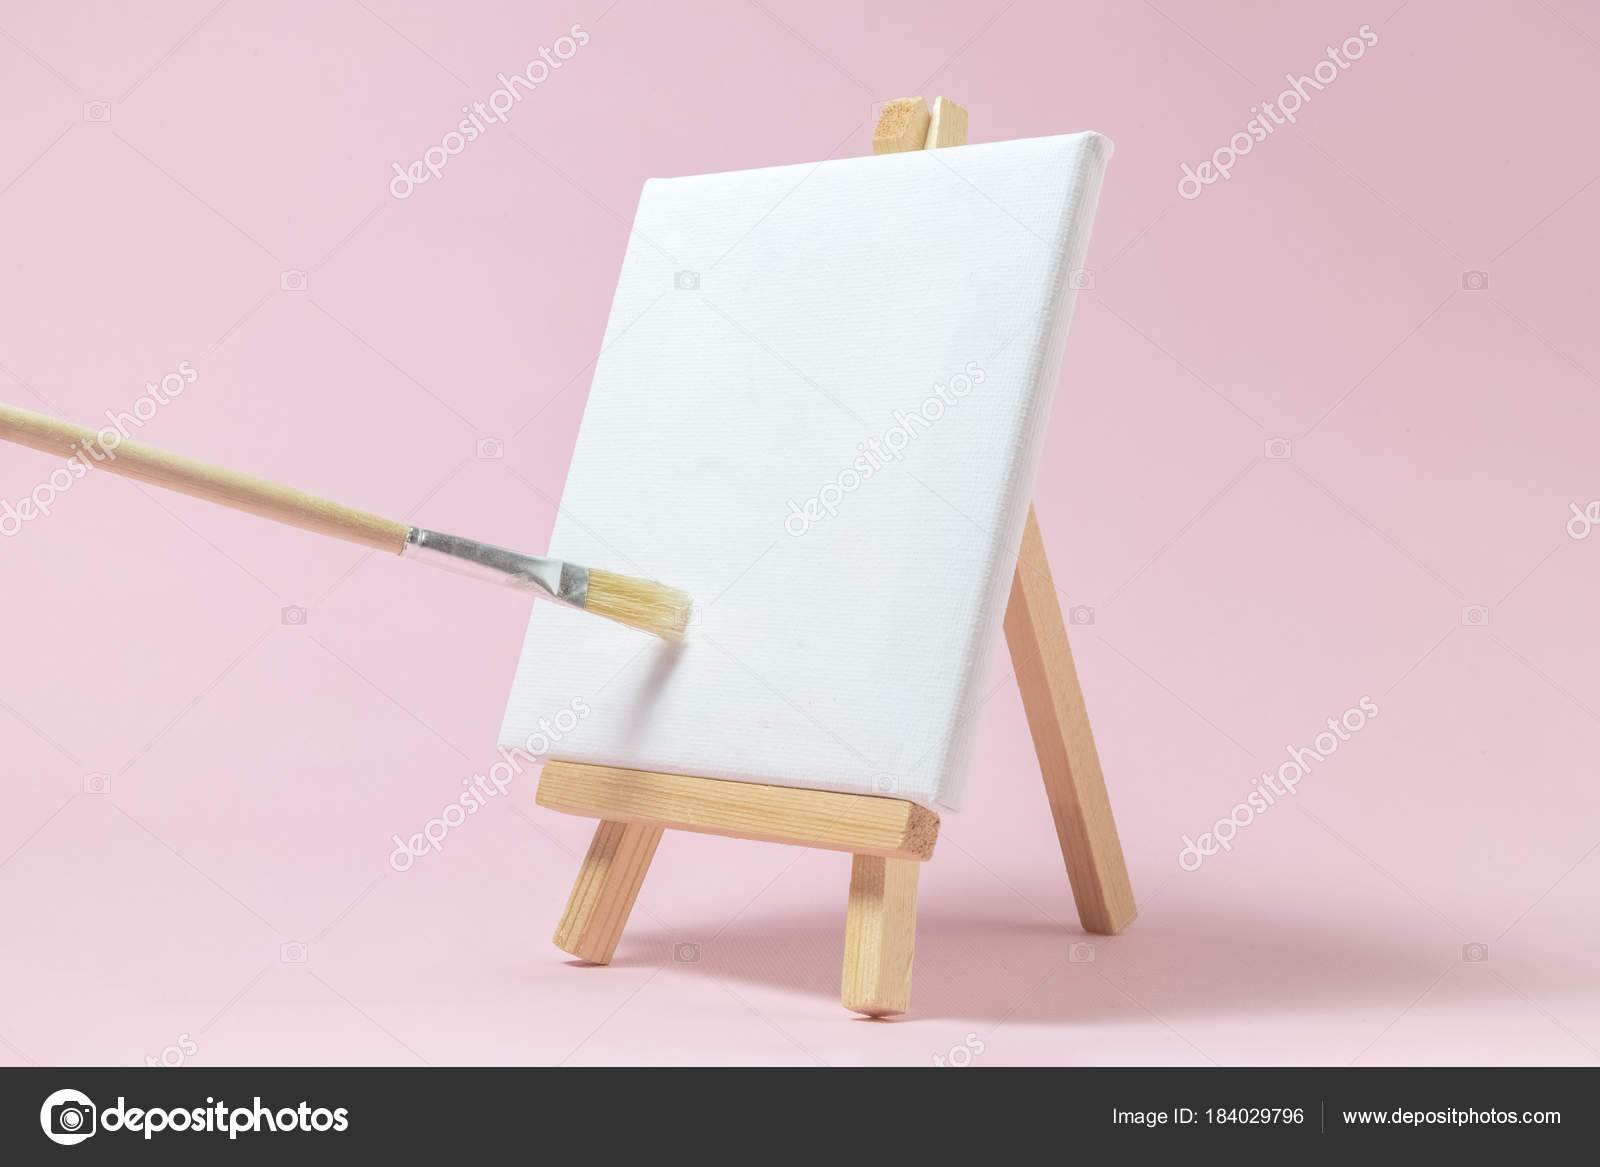 blank art board canvas with wooden stand miniature and paintbrush on